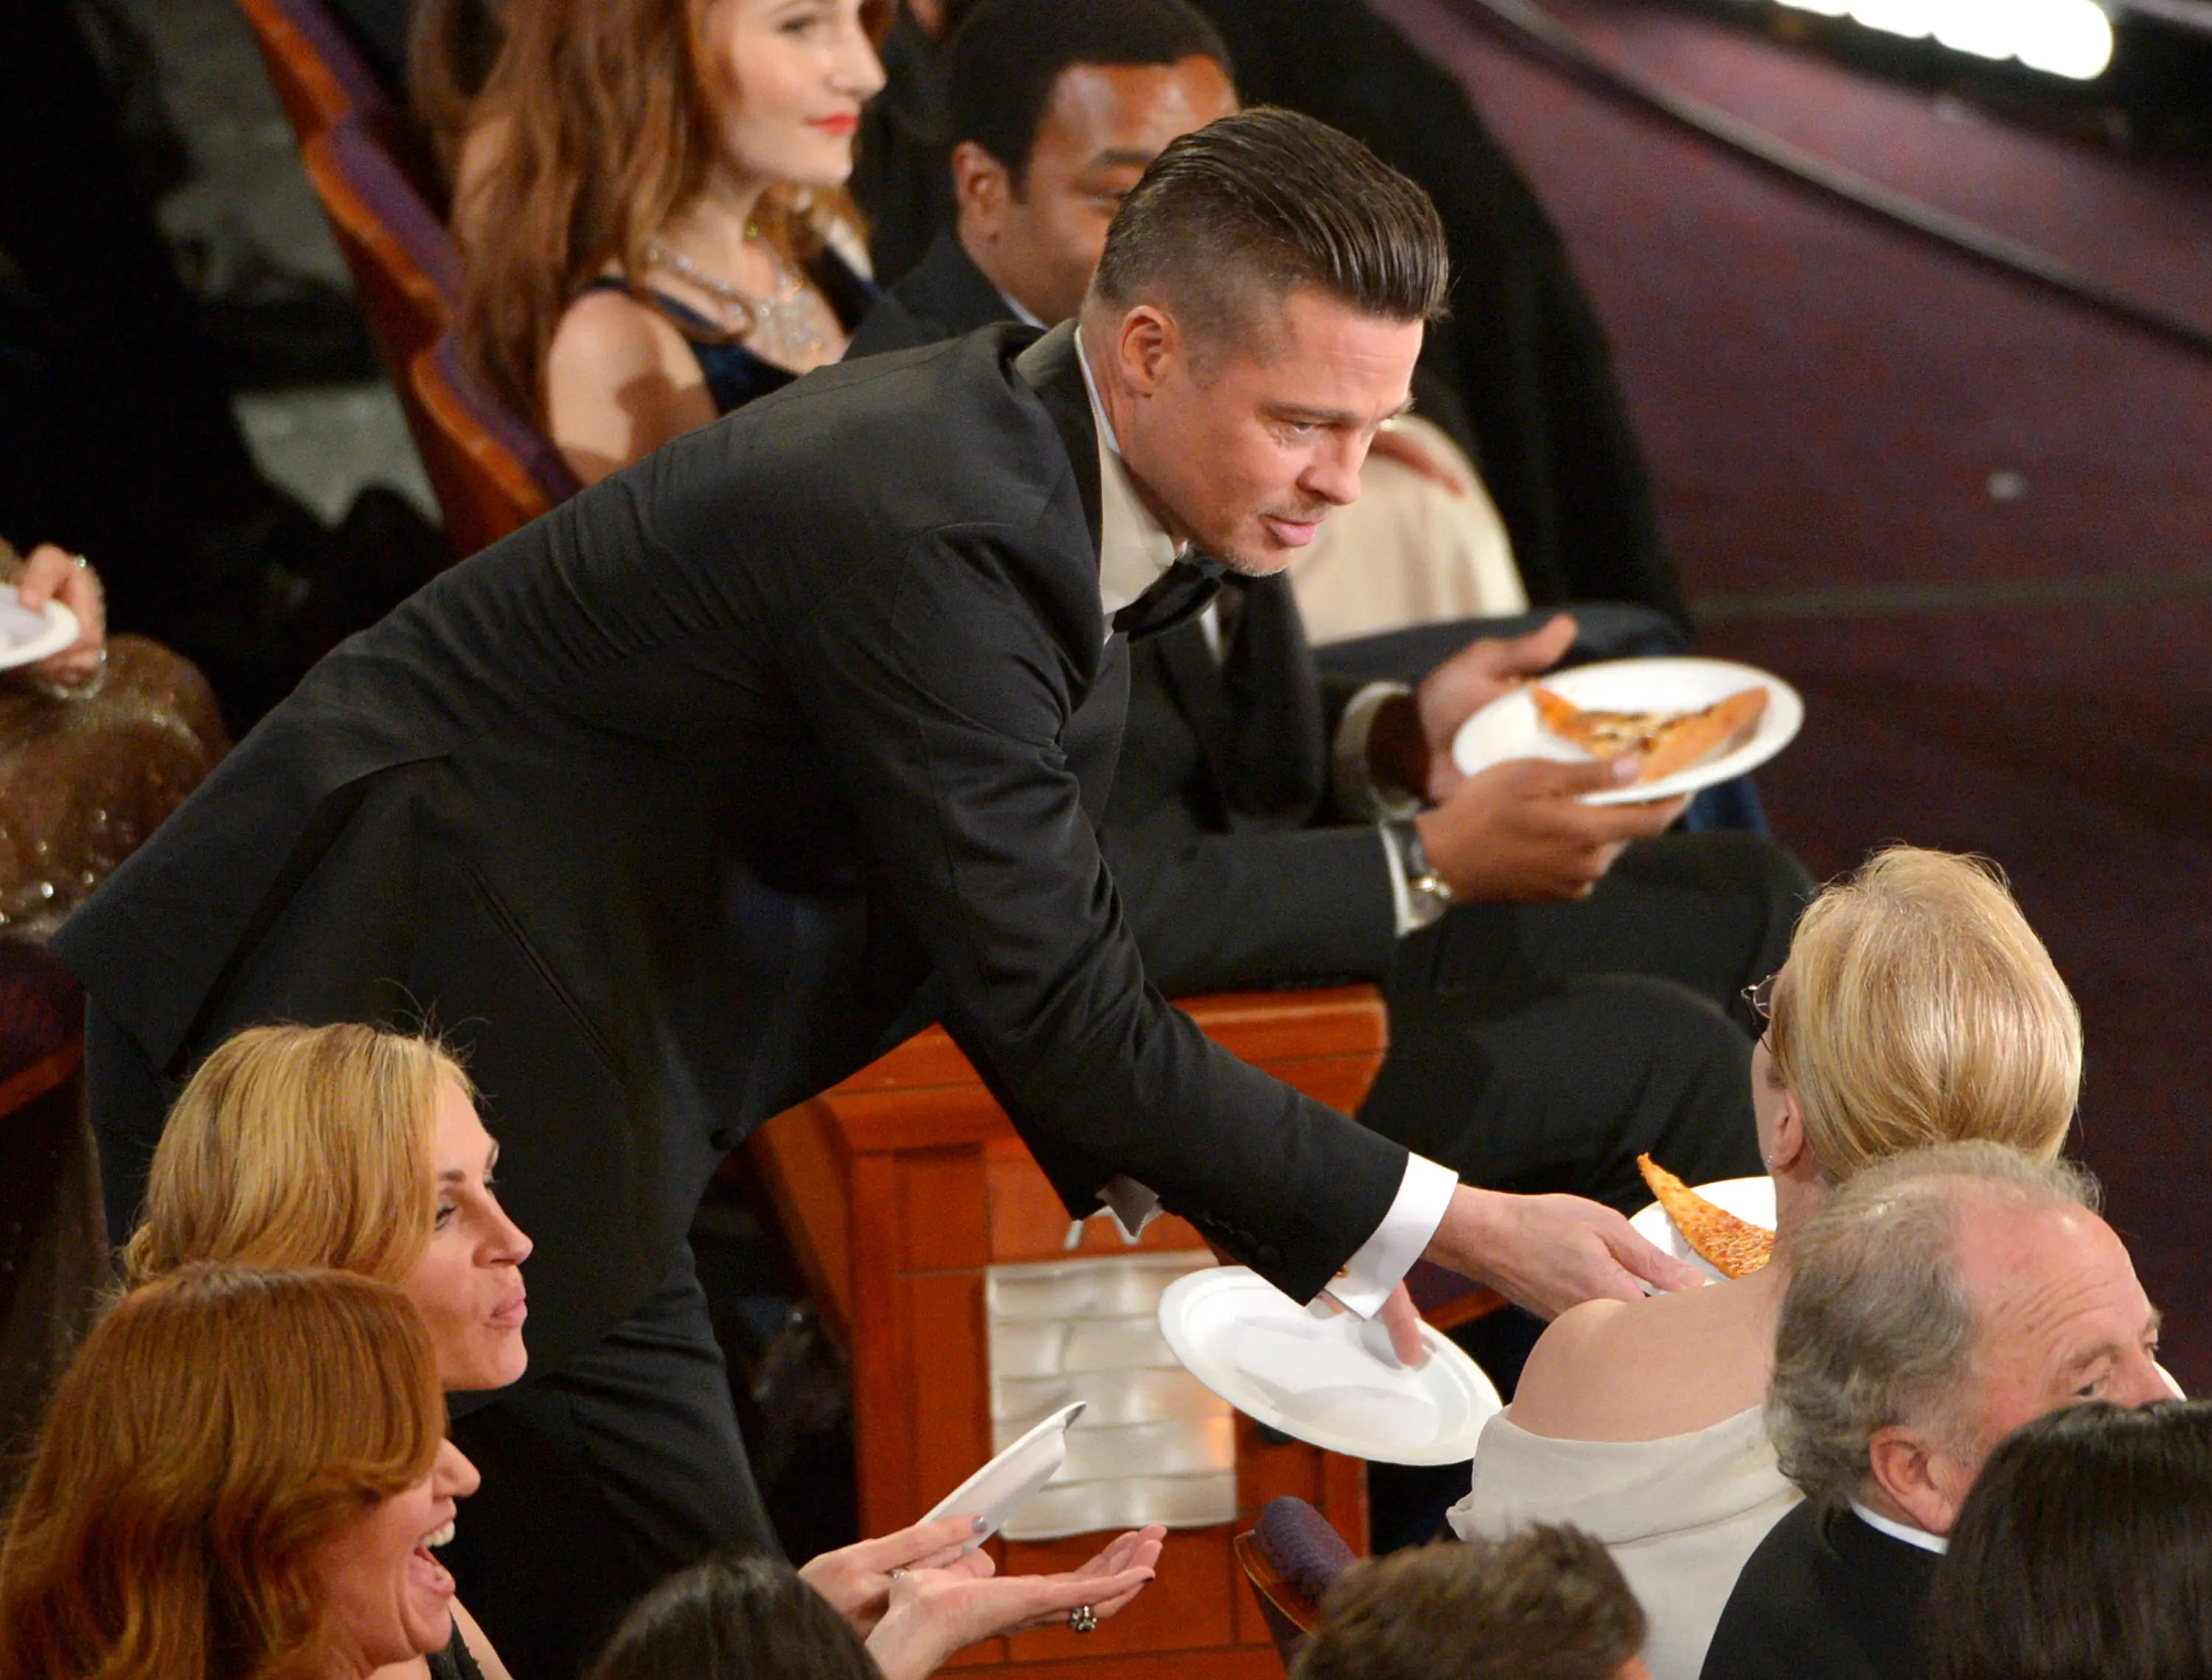 We did enjoy seeing Brad Pitt handing out pizza to everyone from Chiwetel Ejiofor to Meryl Streep, though.